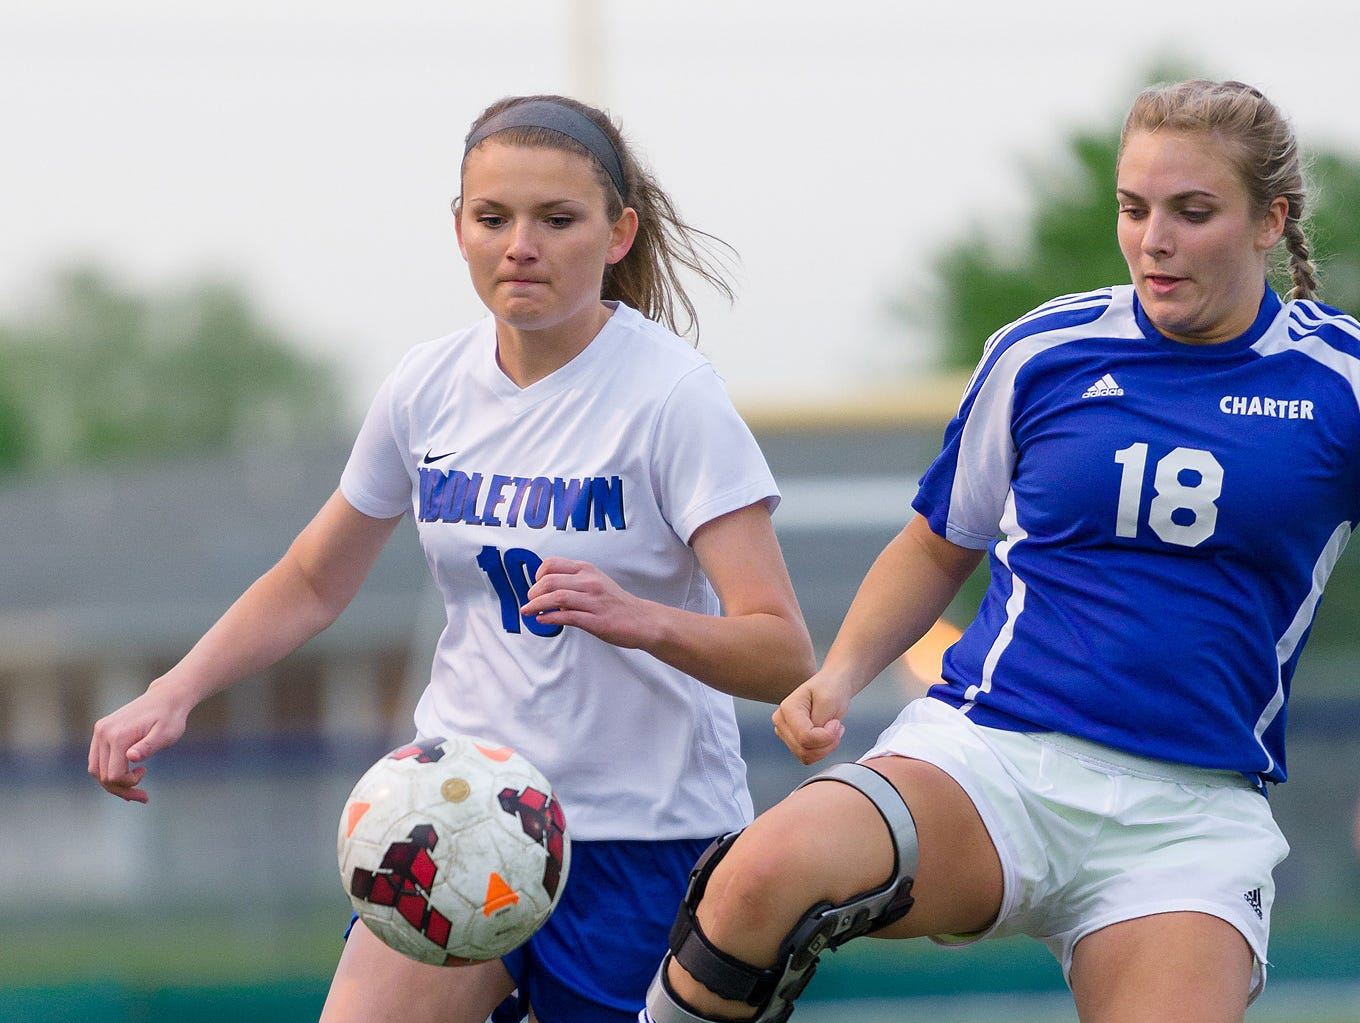 Taylor Mitchell (18) of Charter and Kelsey Hott compete for control of the ball in a Charter at Middletown girls soccer game on Wednesday.